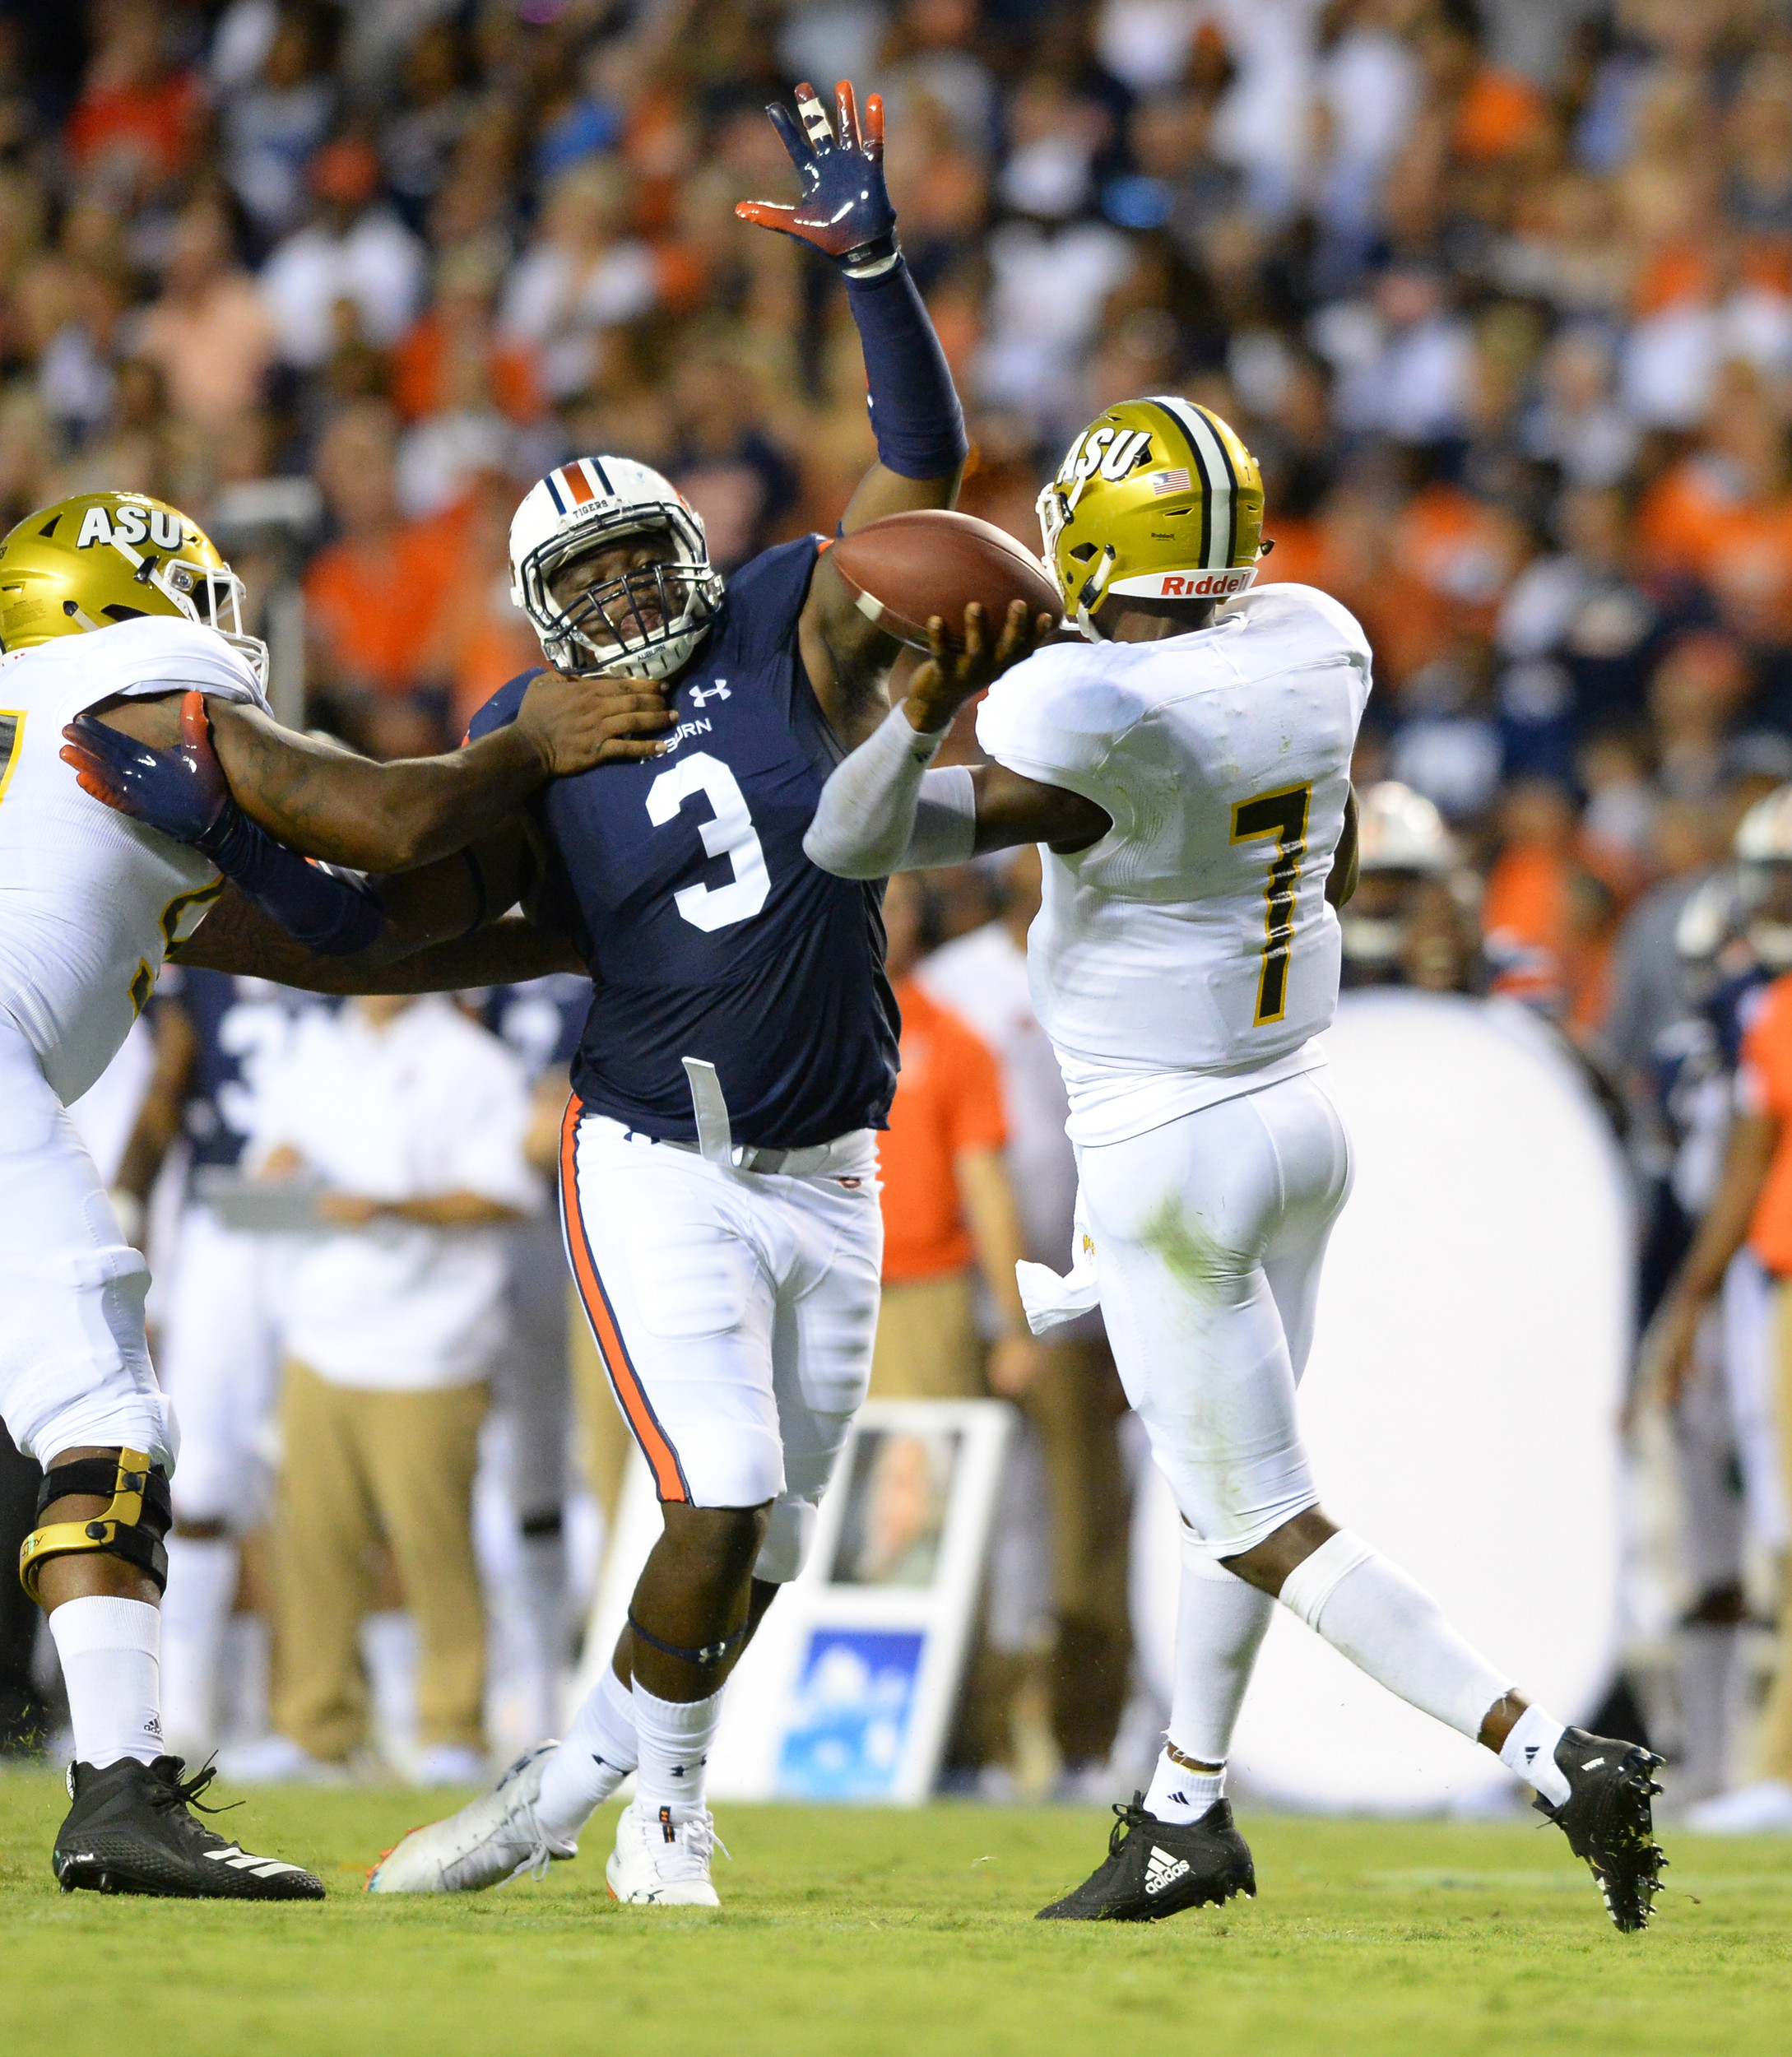 Auburn Tigers defensive lineman Marlon Davidson (3) pressures Alabama State Hornets quarterback Darryl Pearson Jr. (7) during the first half of Saturday's game, at Jordan Hare Stadium in Auburn, AL. (Contributed by Jeff Johnsey)